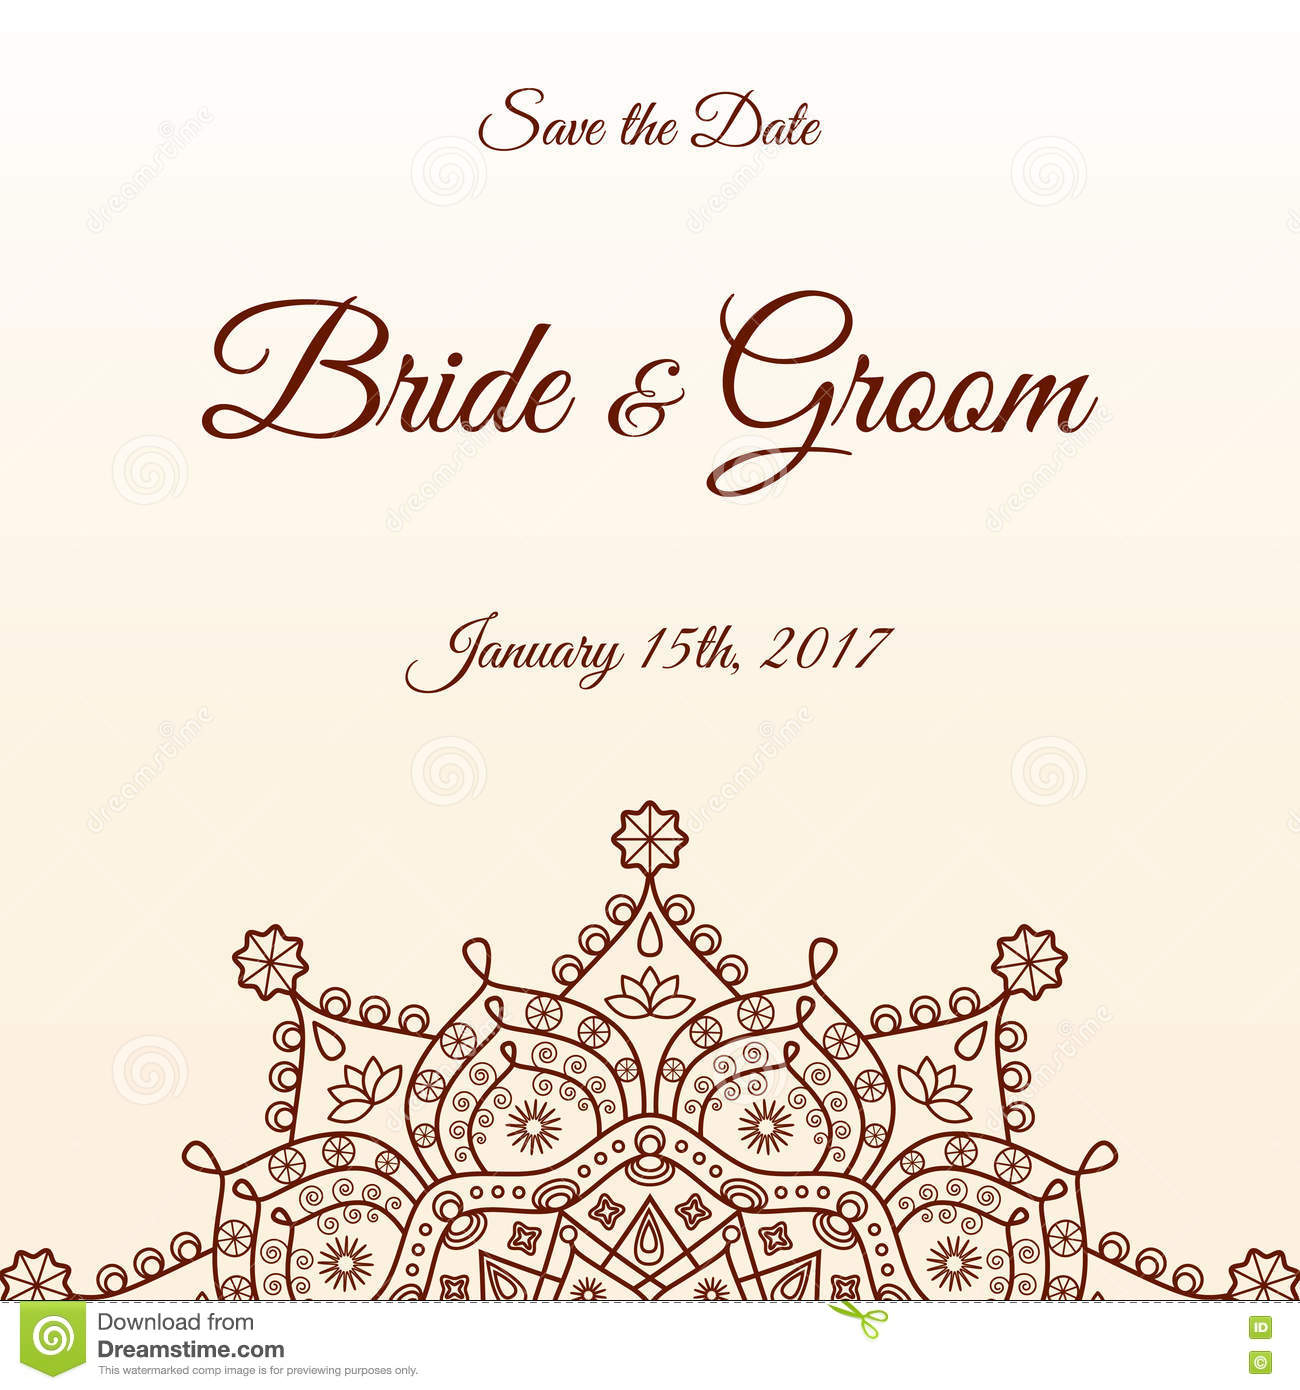 save the date invitation template stock vector illustration of